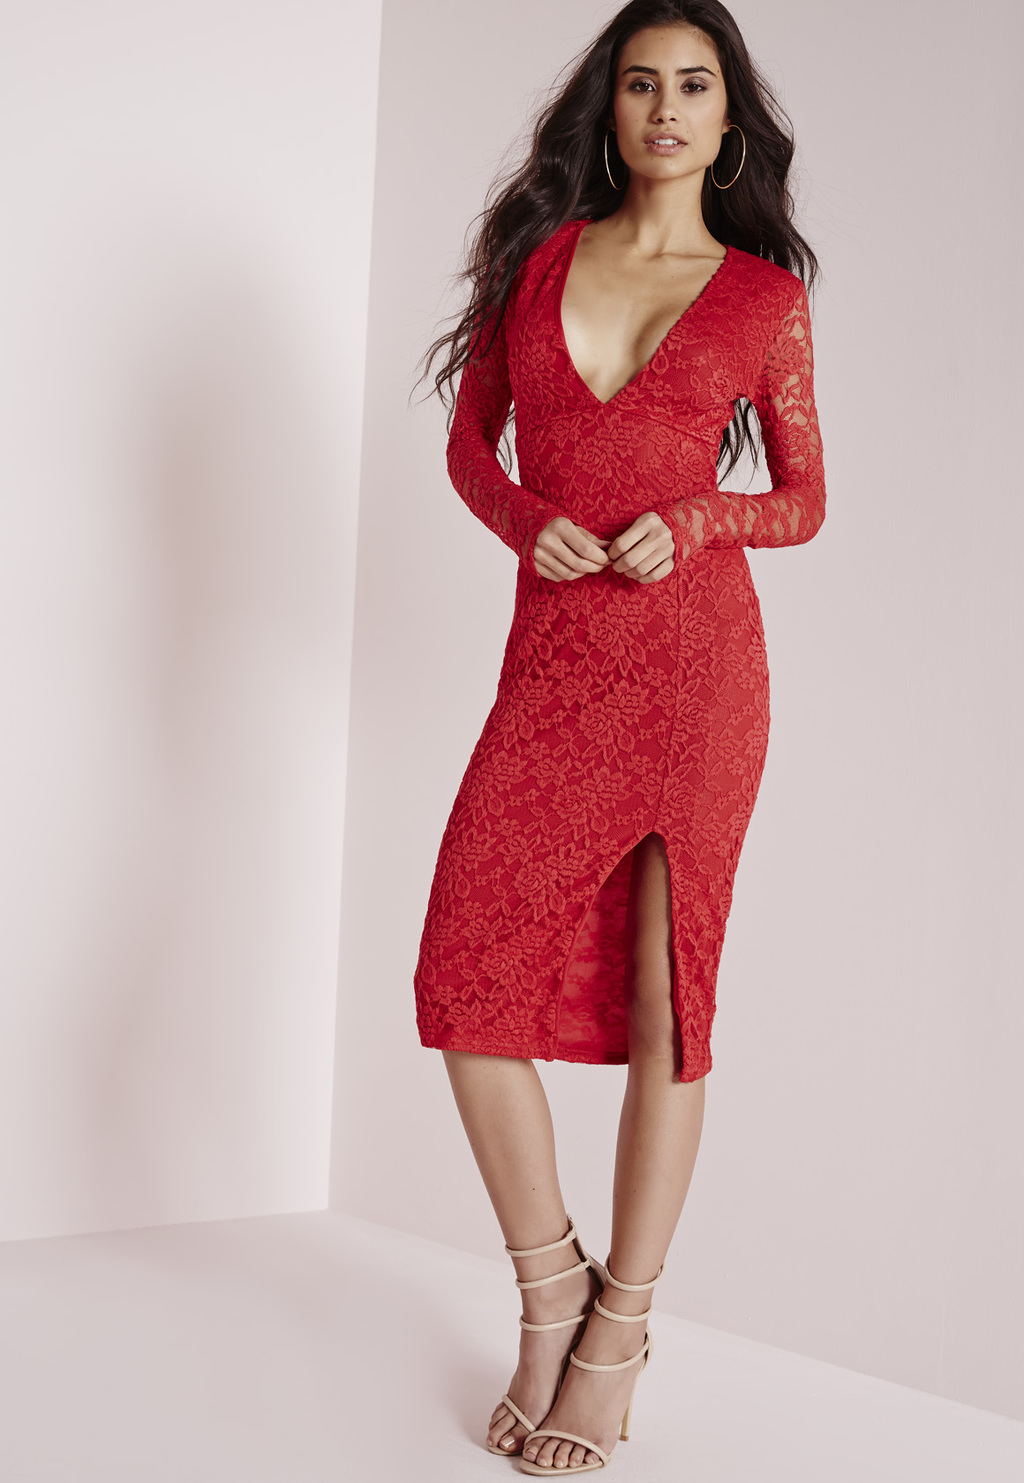 Lace Long Sleeve Side Split Midi Dress Red, Red - style: shift; length: below the knee; neckline: plunge; fit: tight; predominant colour: true red; occasions: evening; fibres: polyester/polyamide - stretch; sleeve length: long sleeve; sleeve style: standard; texture group: lace; pattern type: fabric; pattern: patterned/print; season: a/w 2015